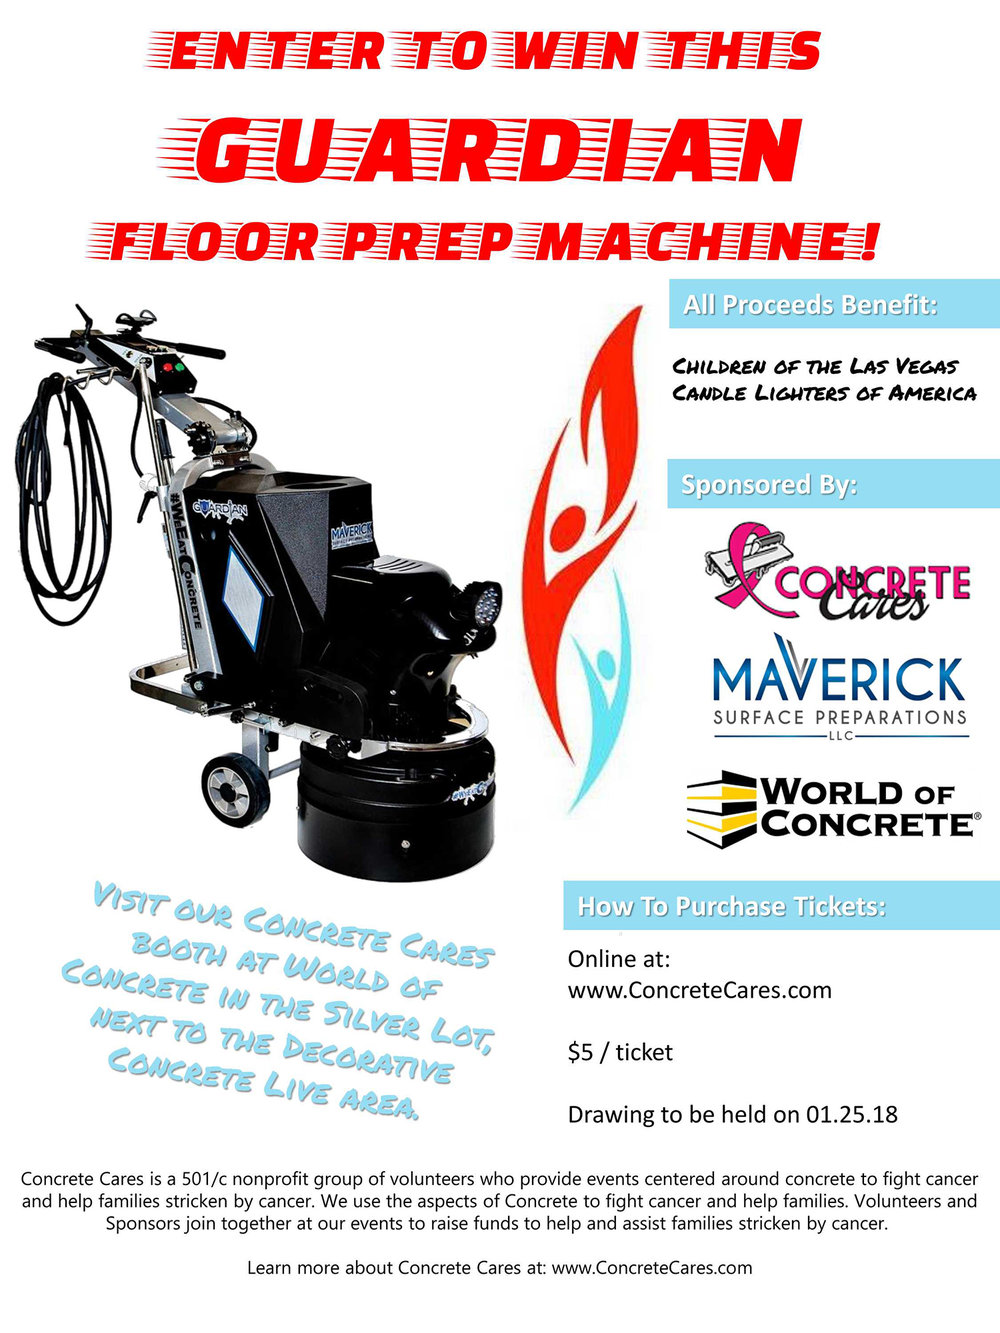 Maverick Grinder - Click to see full ad